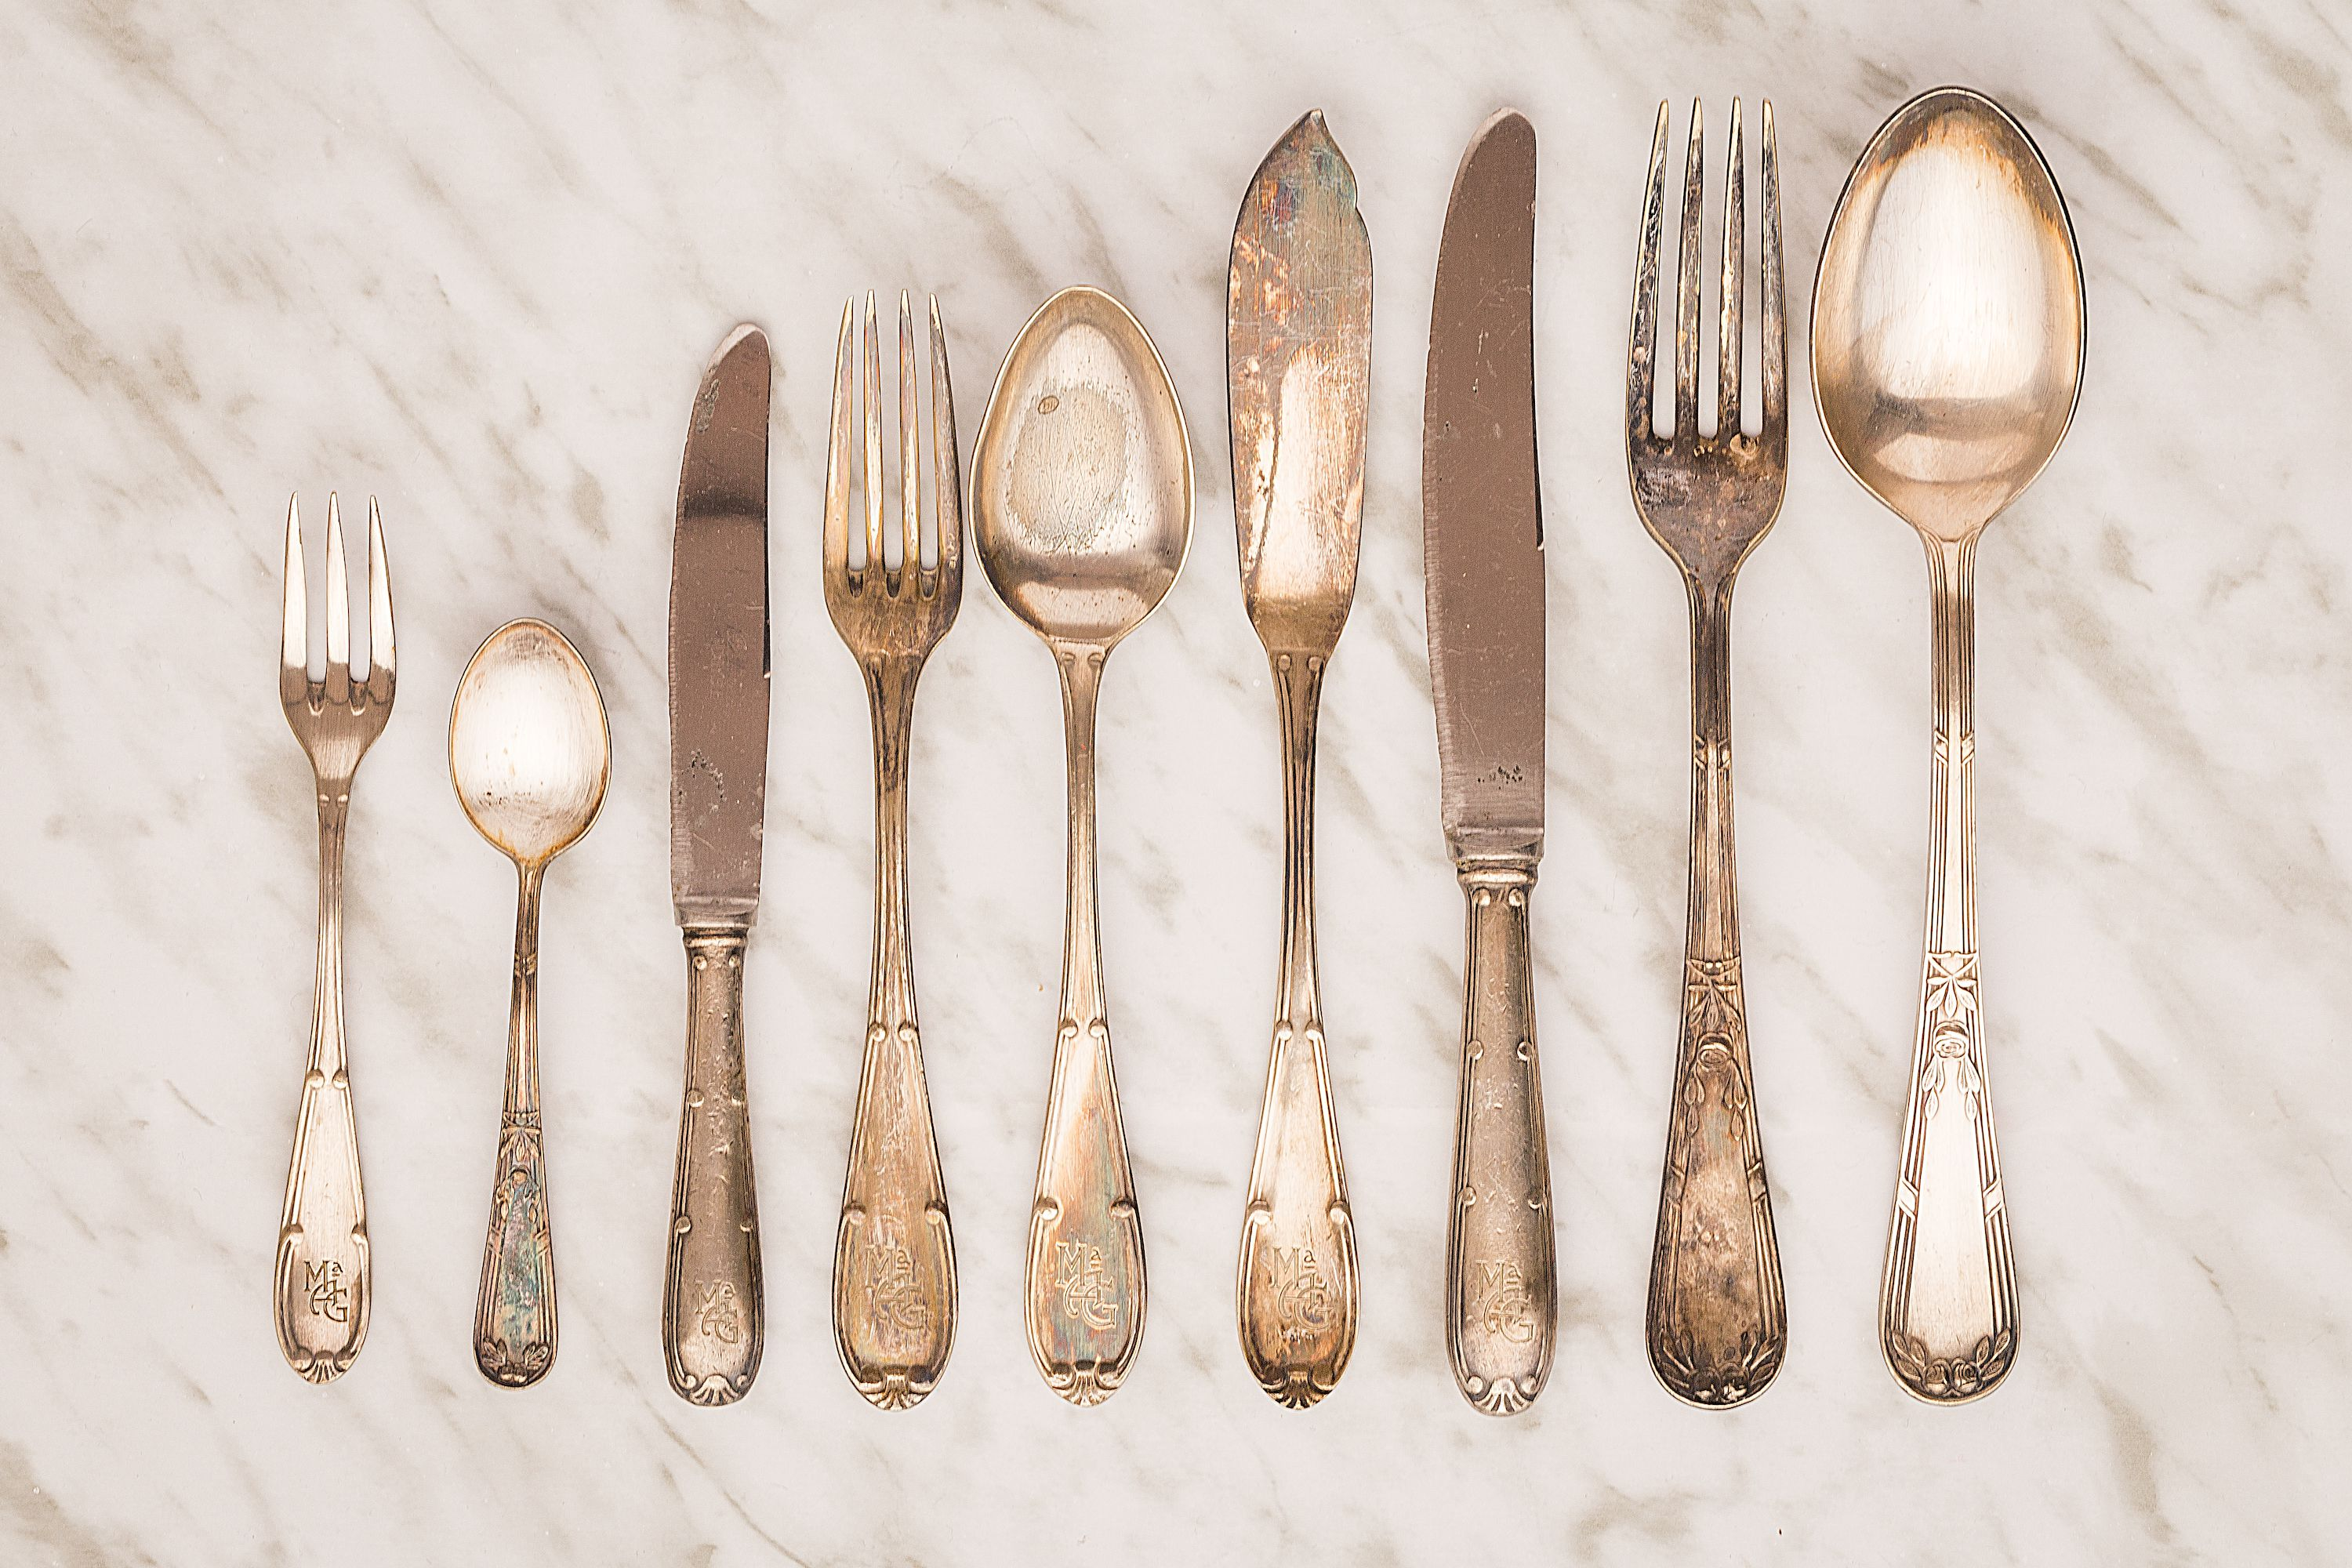 Real Sterling-Silver Versus Silver-Plated Flatware